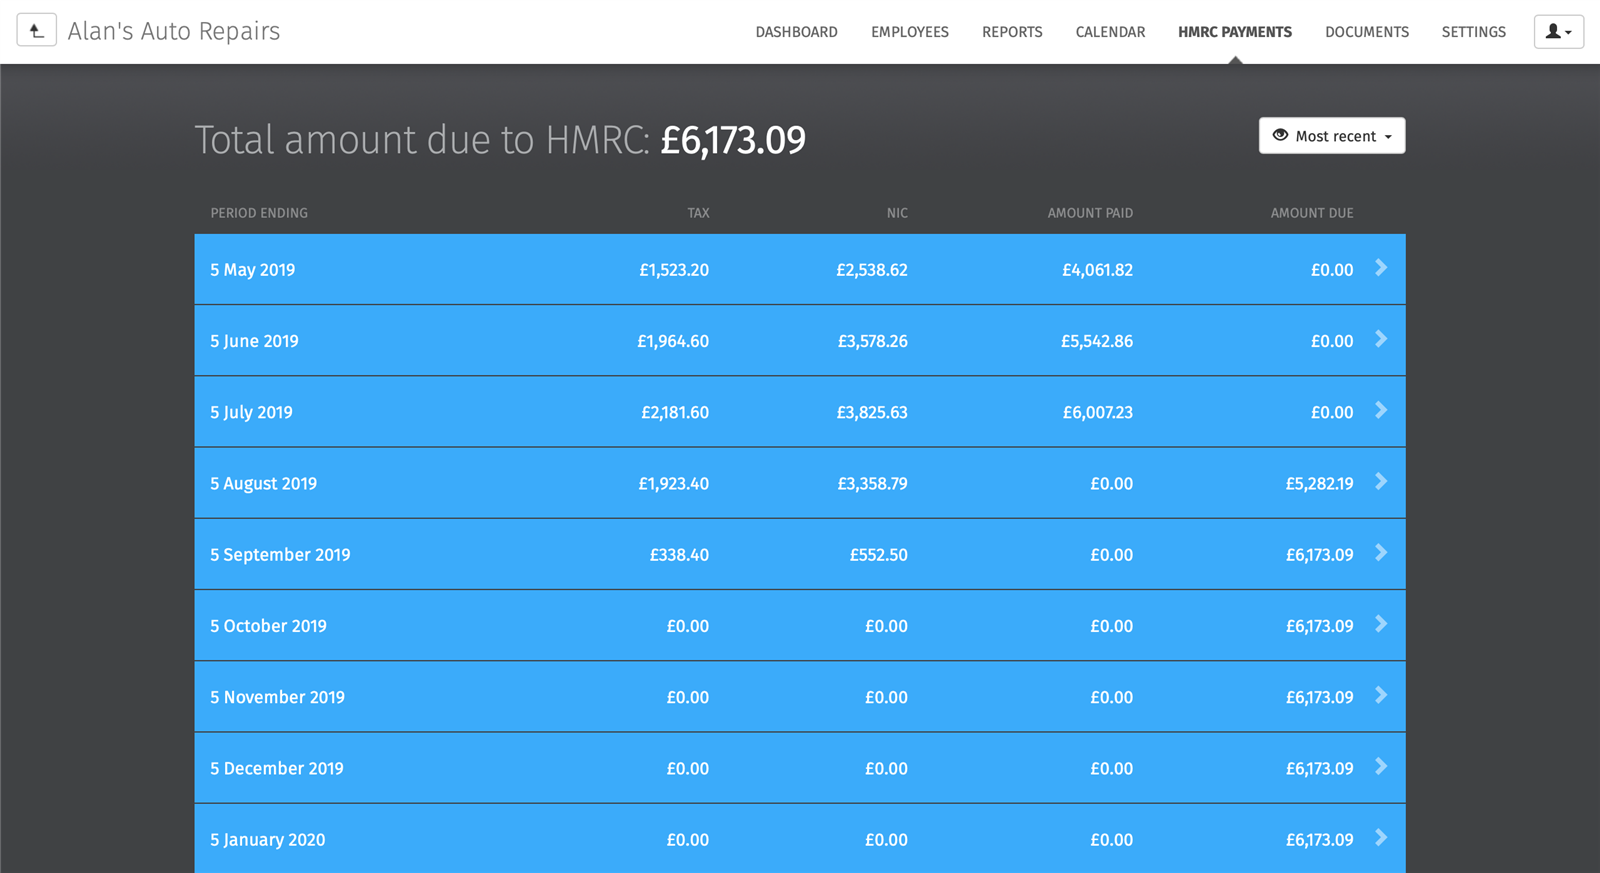 hmrc payments